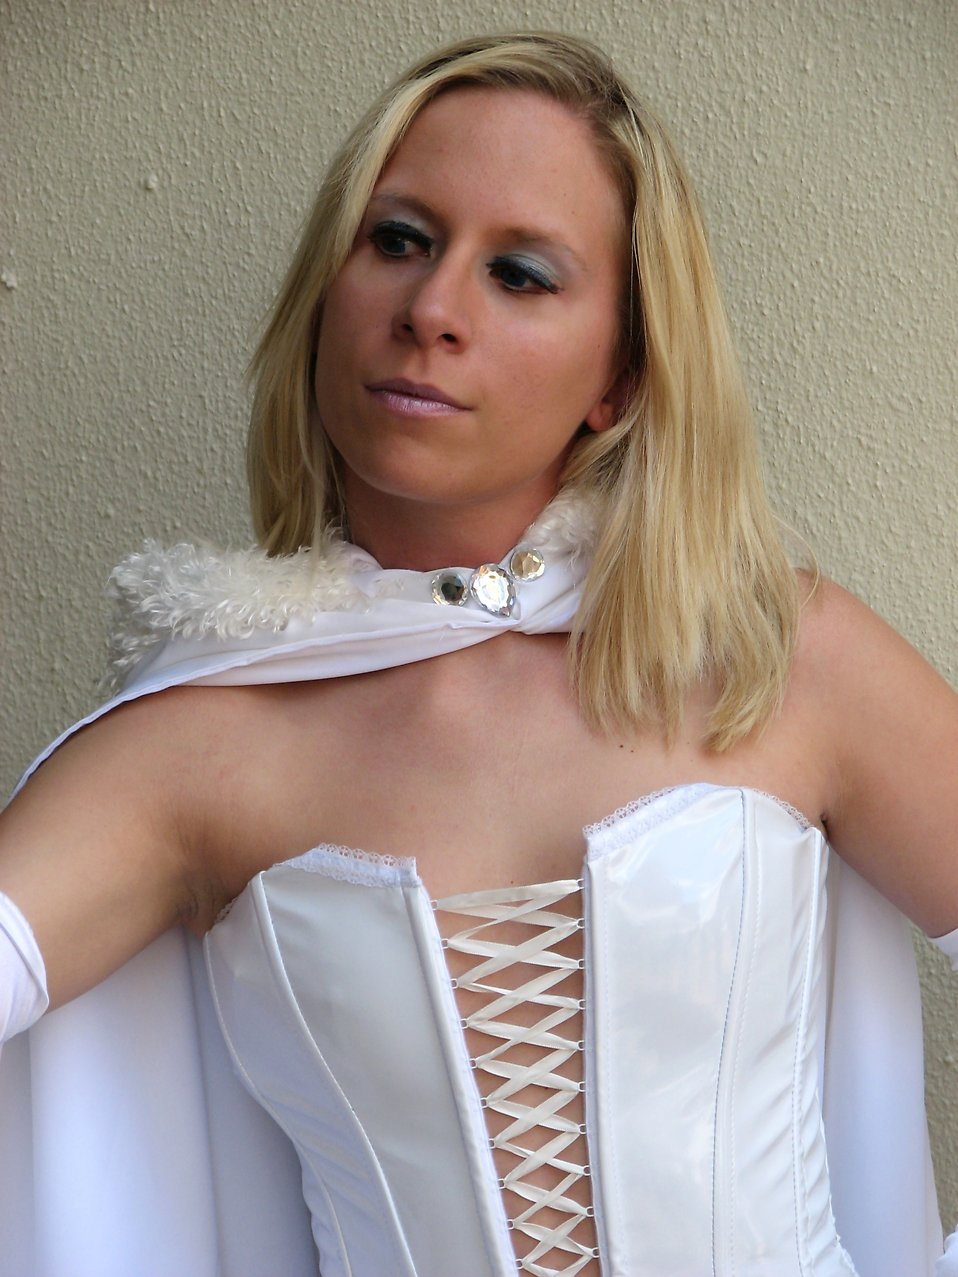 Beautiful blonde in white super hero costume at Dragoncon 2008 : Free Stock Photo